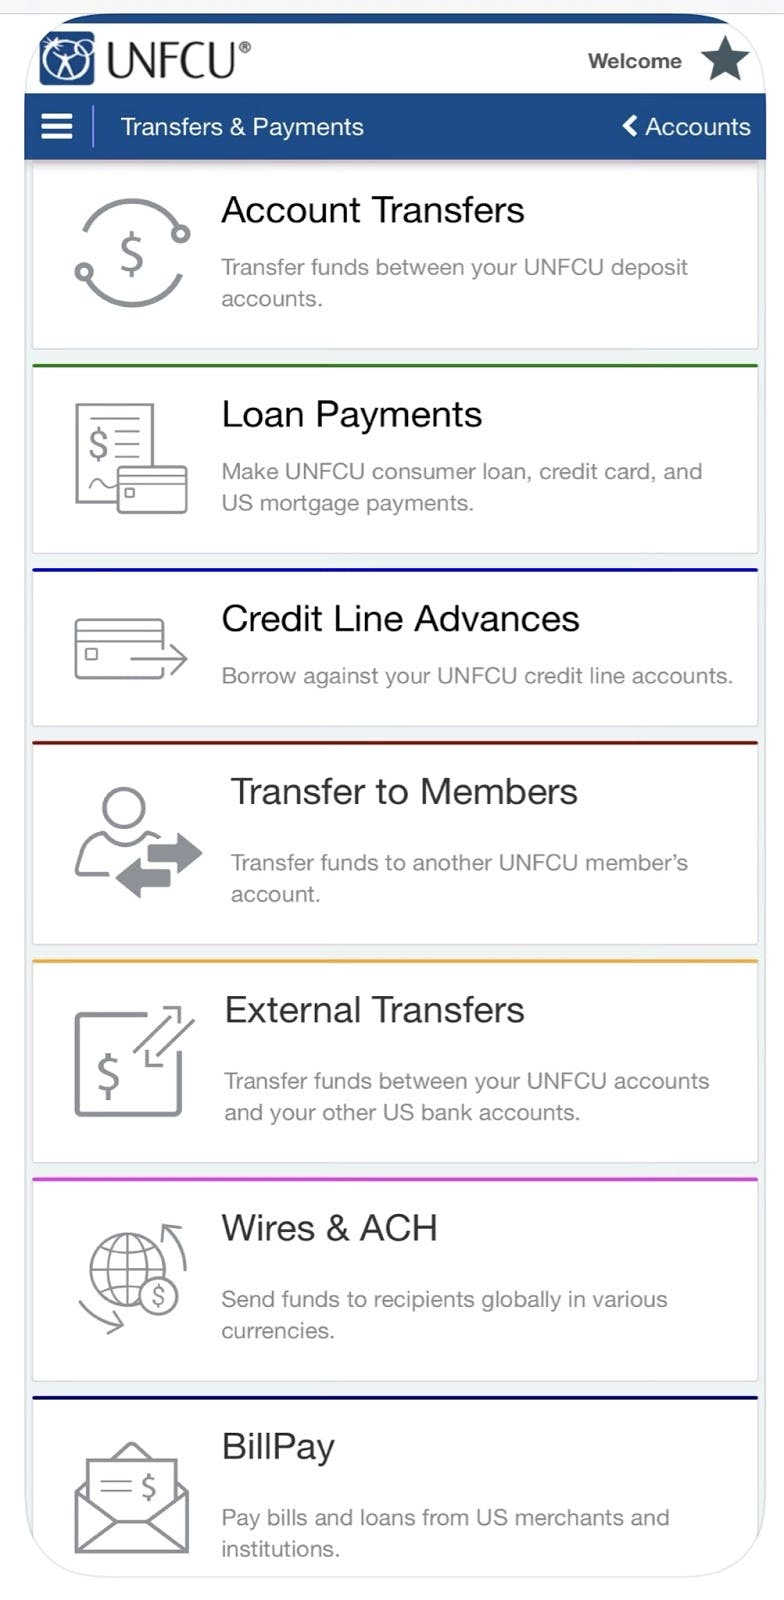 Payment categories in the UNFCU Digital Banking app